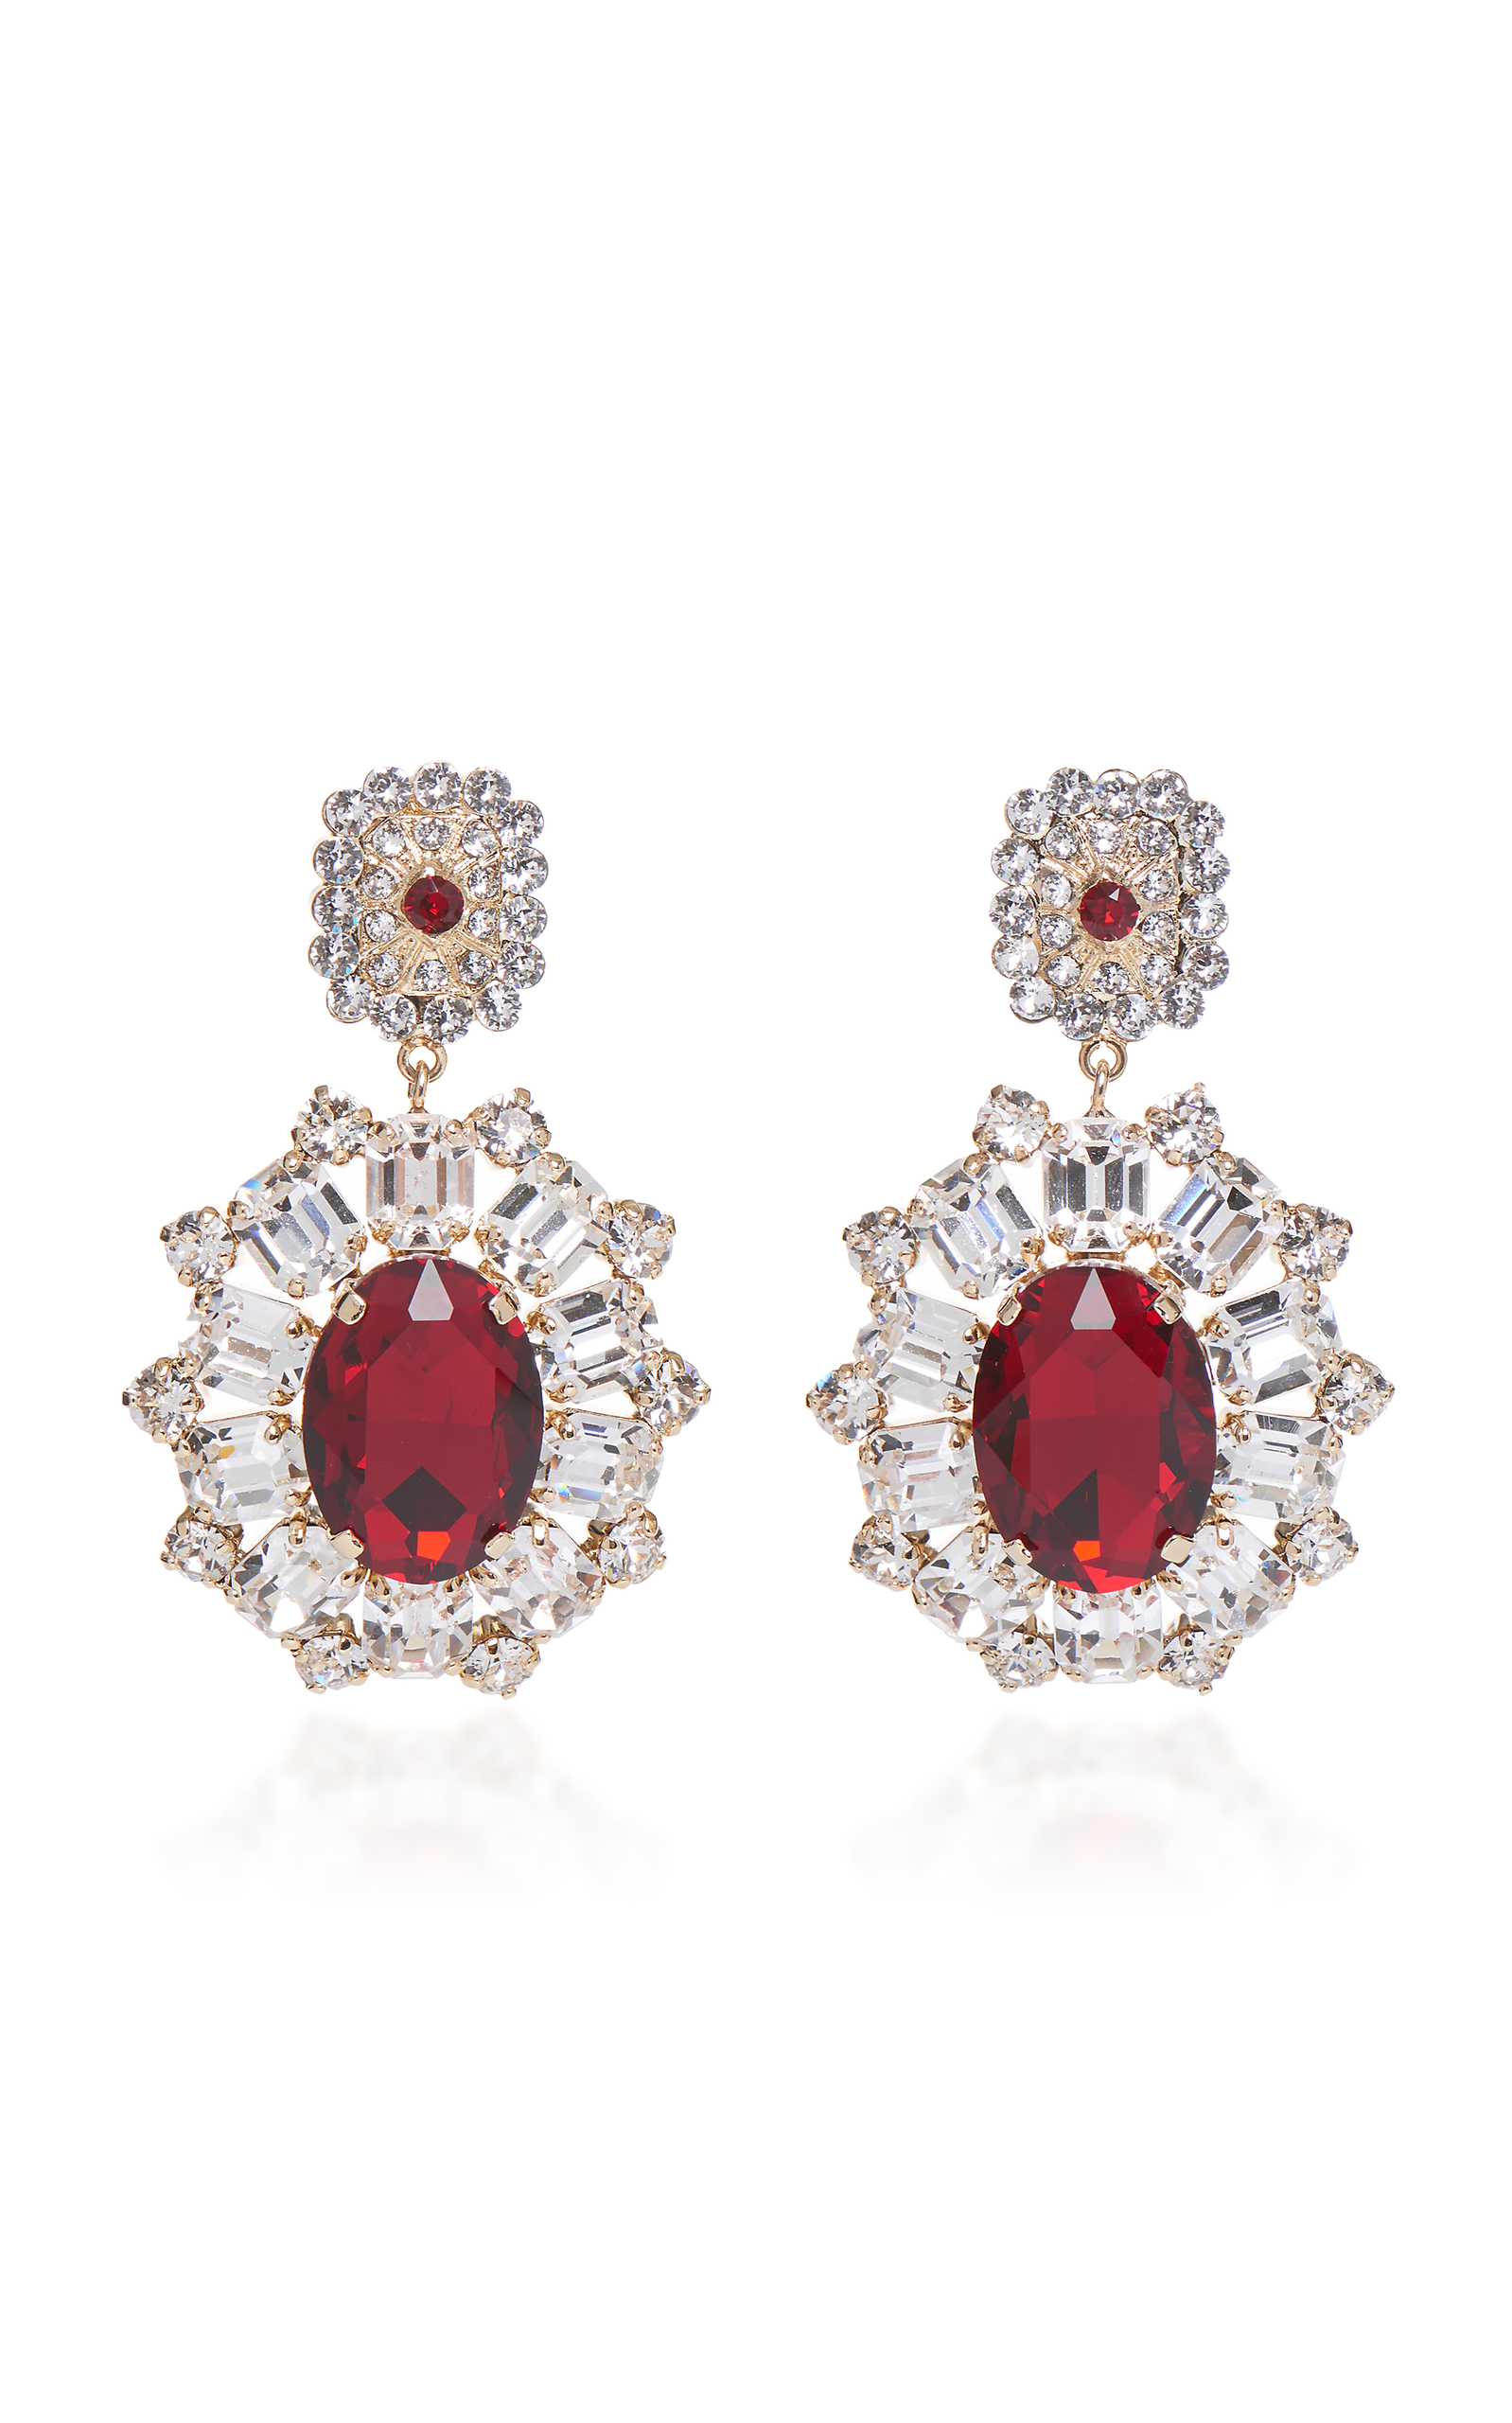 teardrop etsy market ruby rhinestone earrings red wedding crystal swarovski il